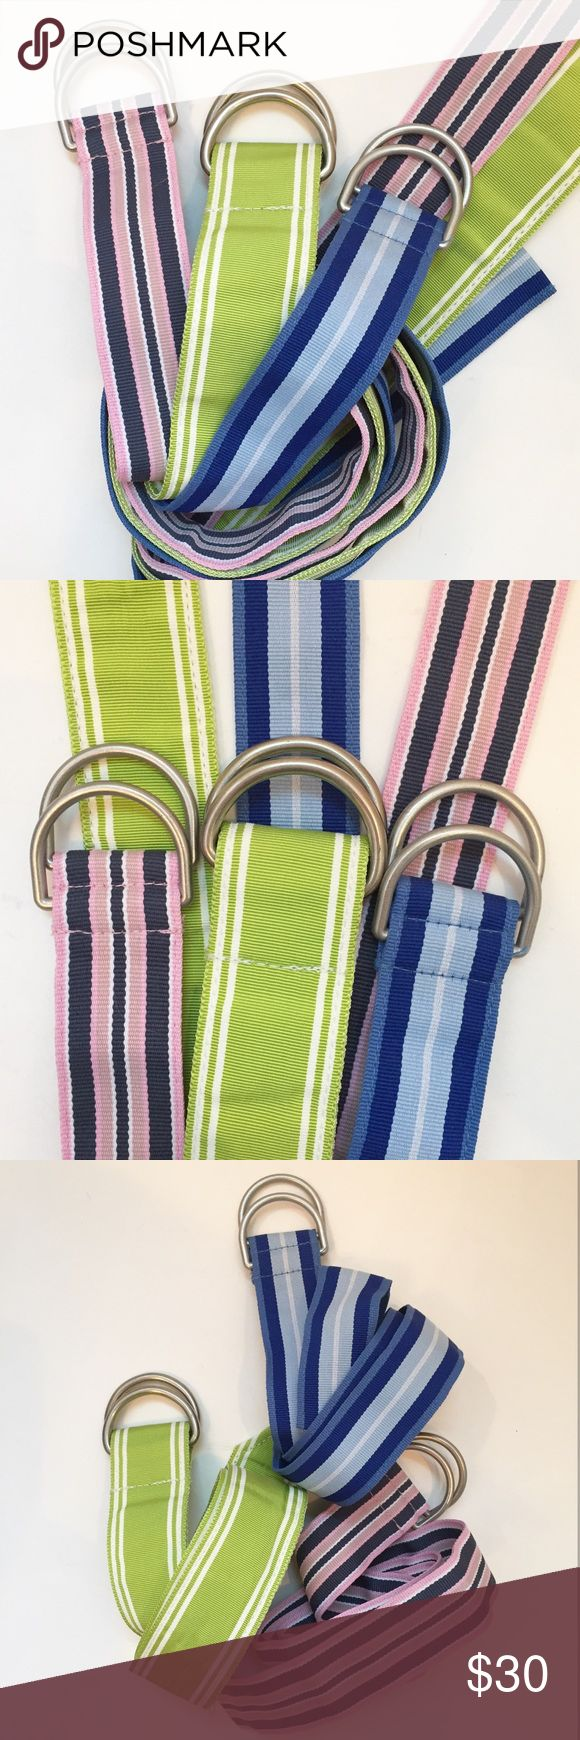 "Like new! L.L. Bean D-Ring Belts Like new! L.L. Bean D-Ring Belts...bundle of grosgrain ribbon belts...a preppy wardrobe staple...pink/navy/white size S/M 39"" length, 1.25"" width...lime/white size M 40"" length, 1.5"" width...navy/marine/sky/white size S/M 39"" length, 1.25"" width. Excellent, like new condition. Retail $90 L.L. Bean Accessories Belts"